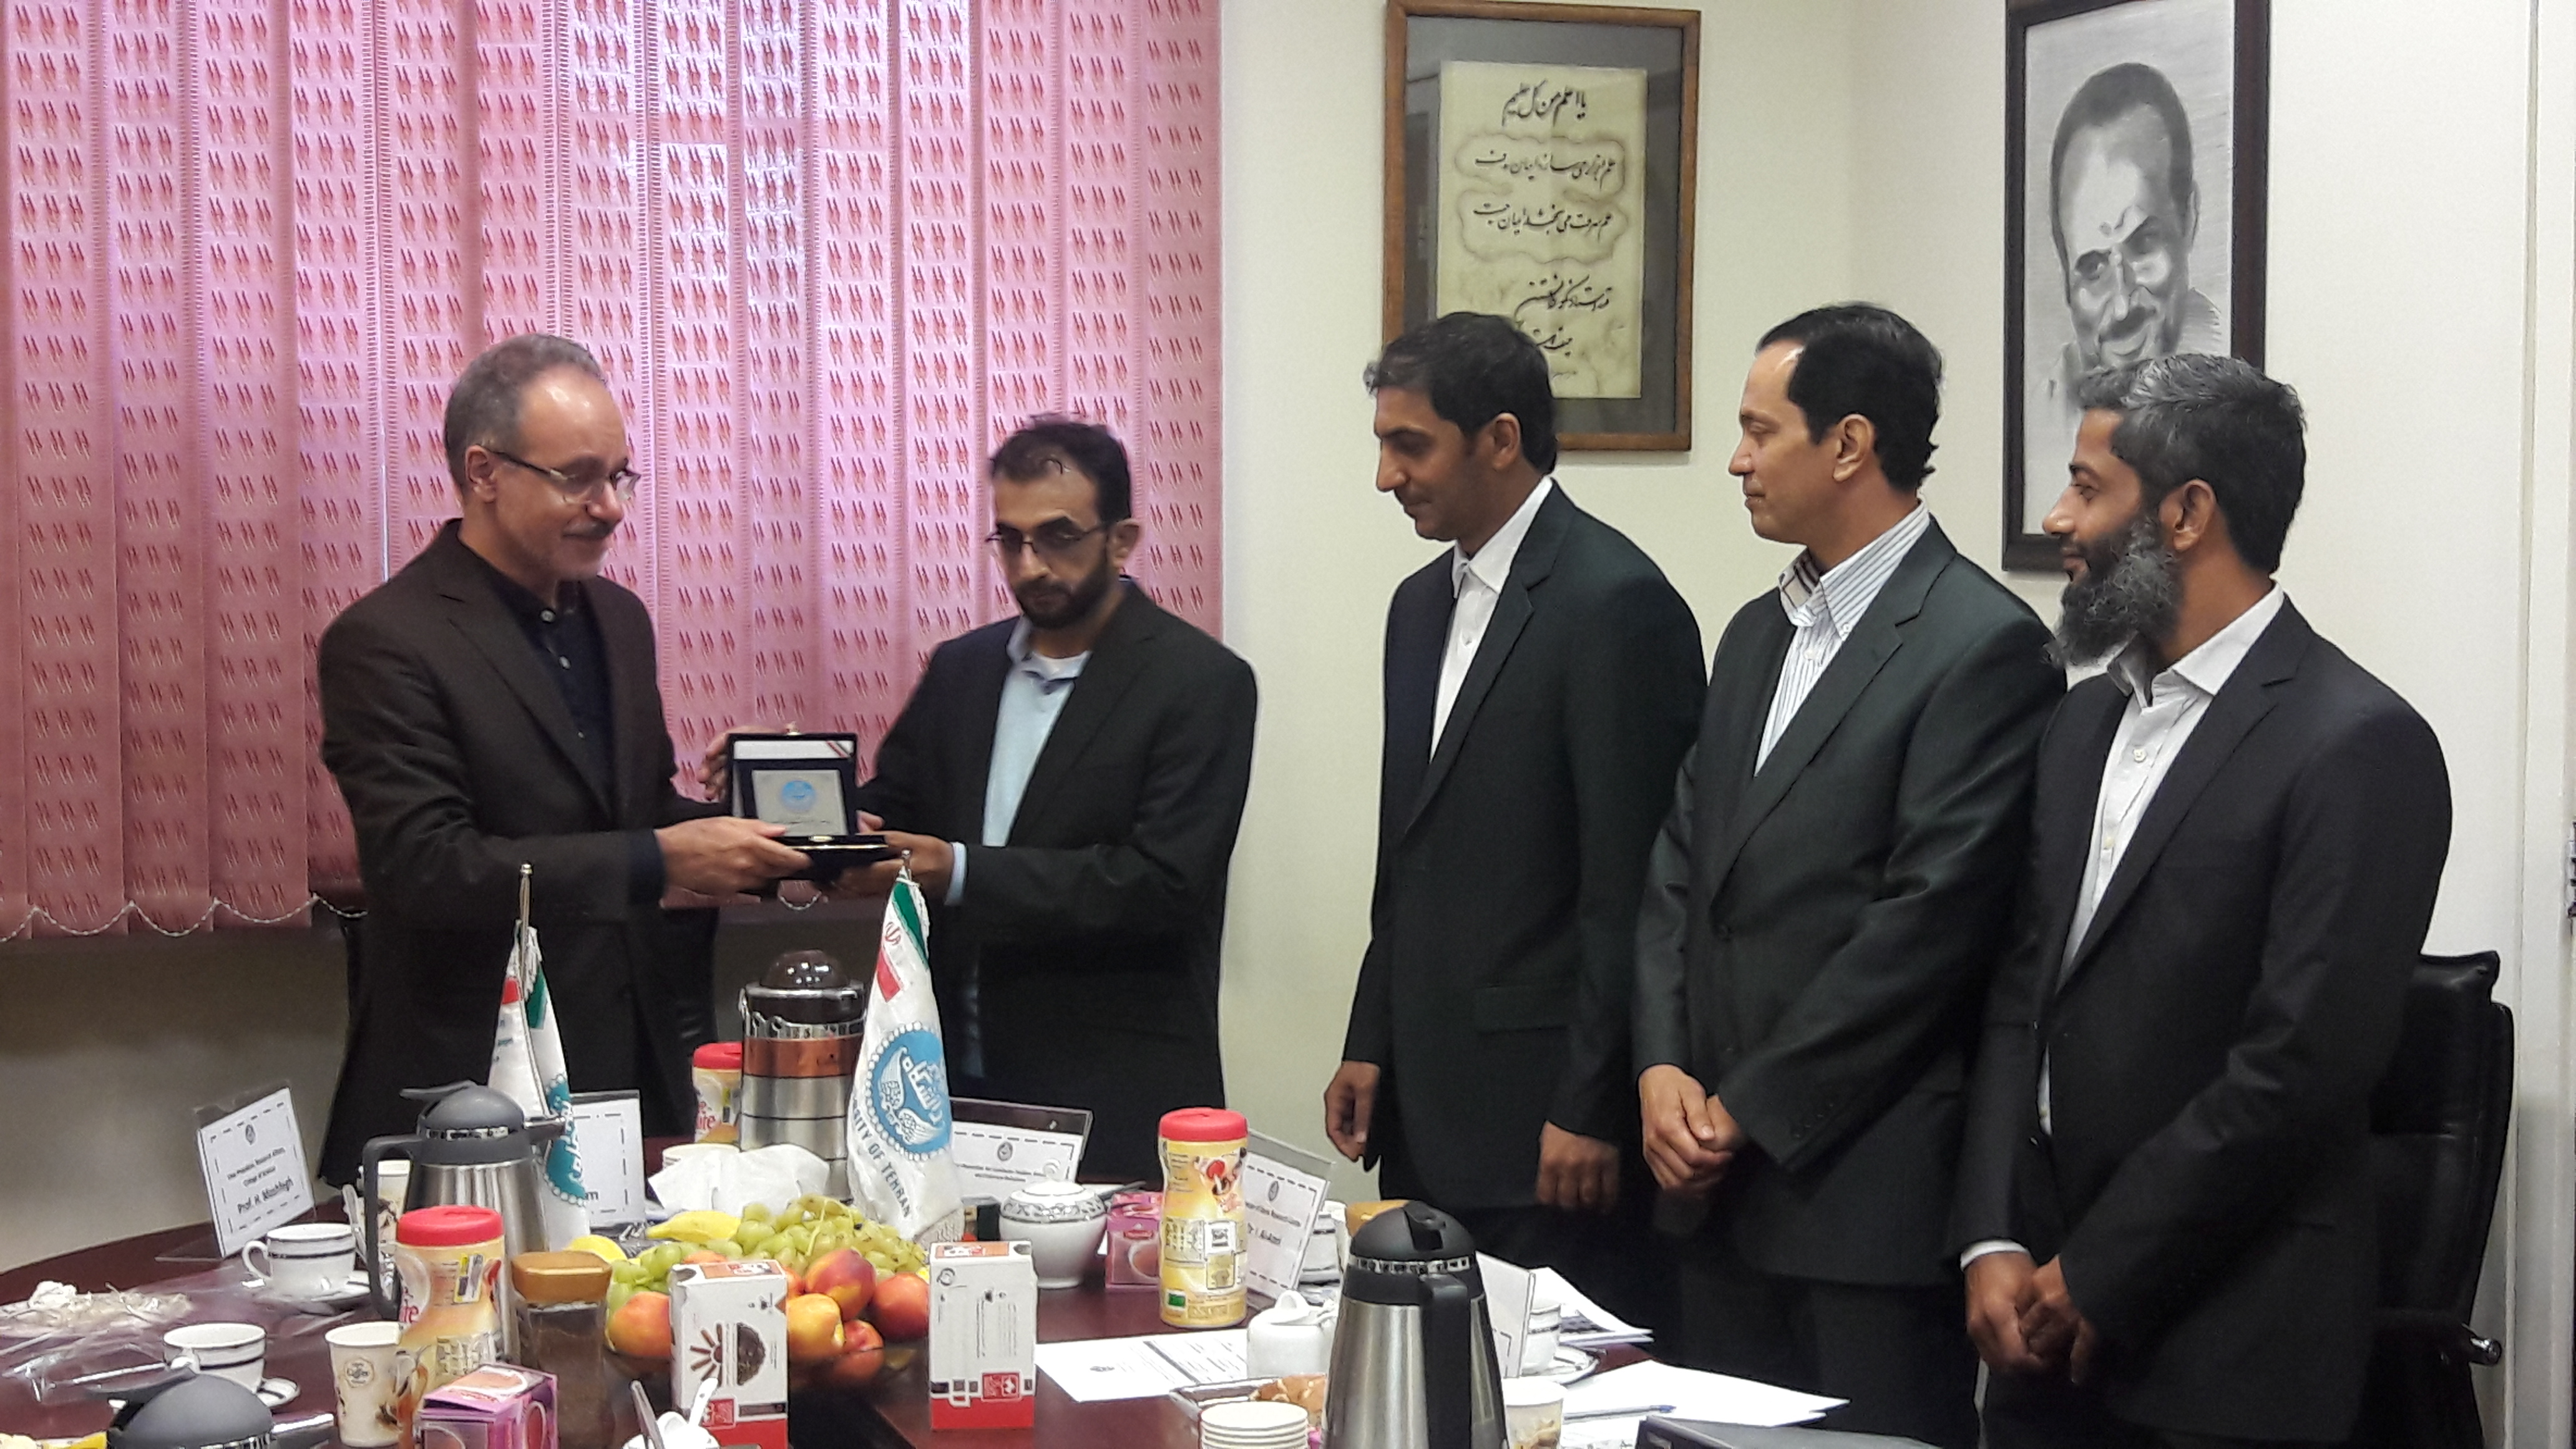 Meeting of a Delegation from the University of Nizwa from College of Science